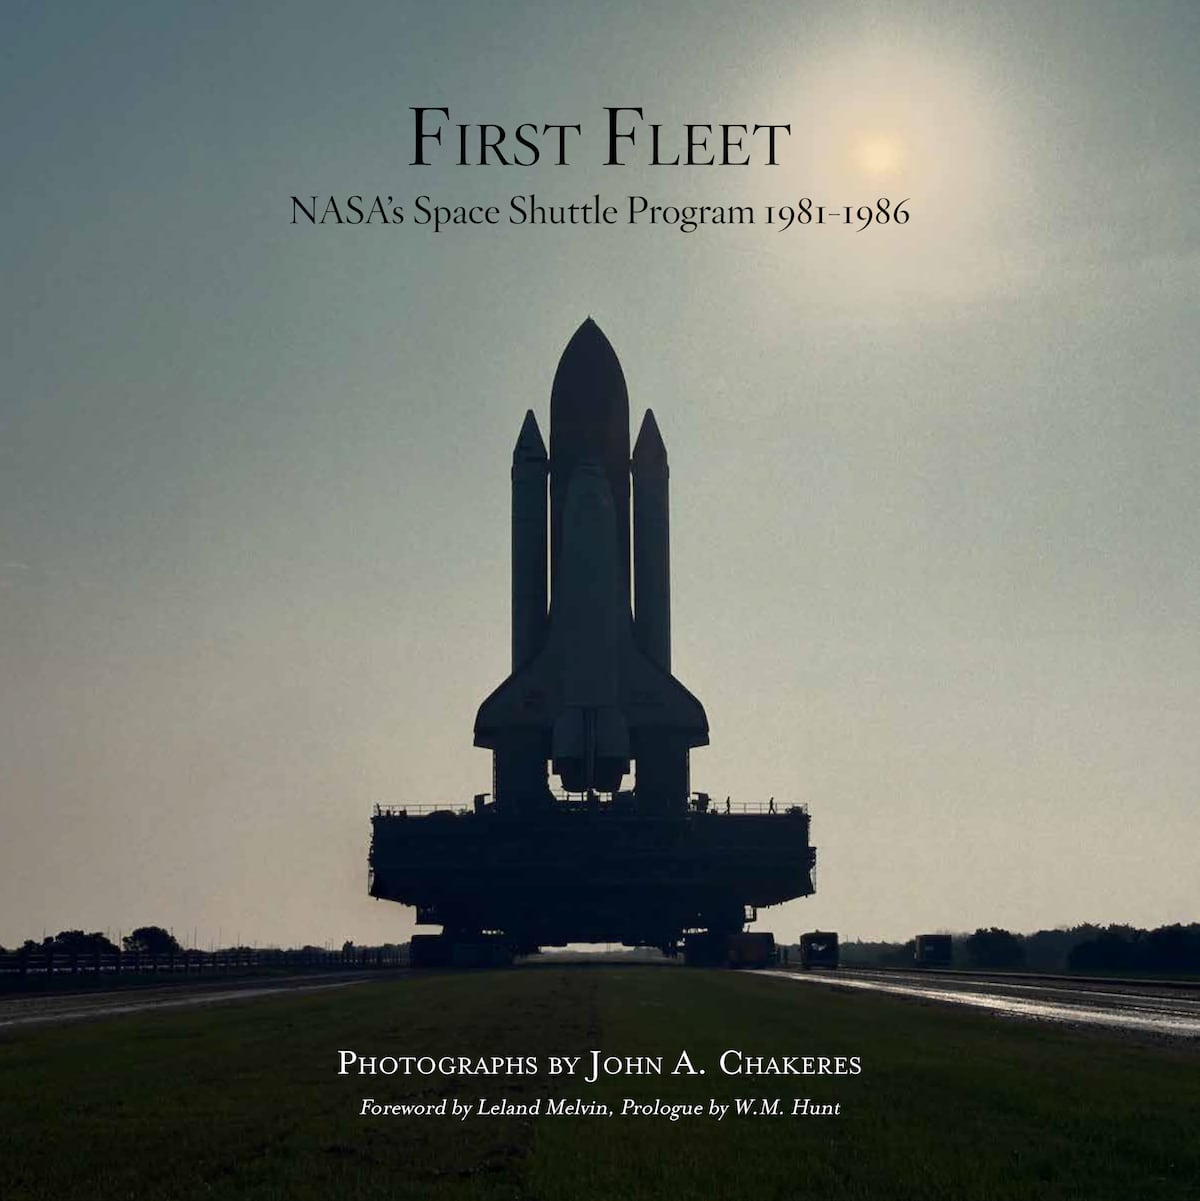 First Fleet by John A. Chakeres